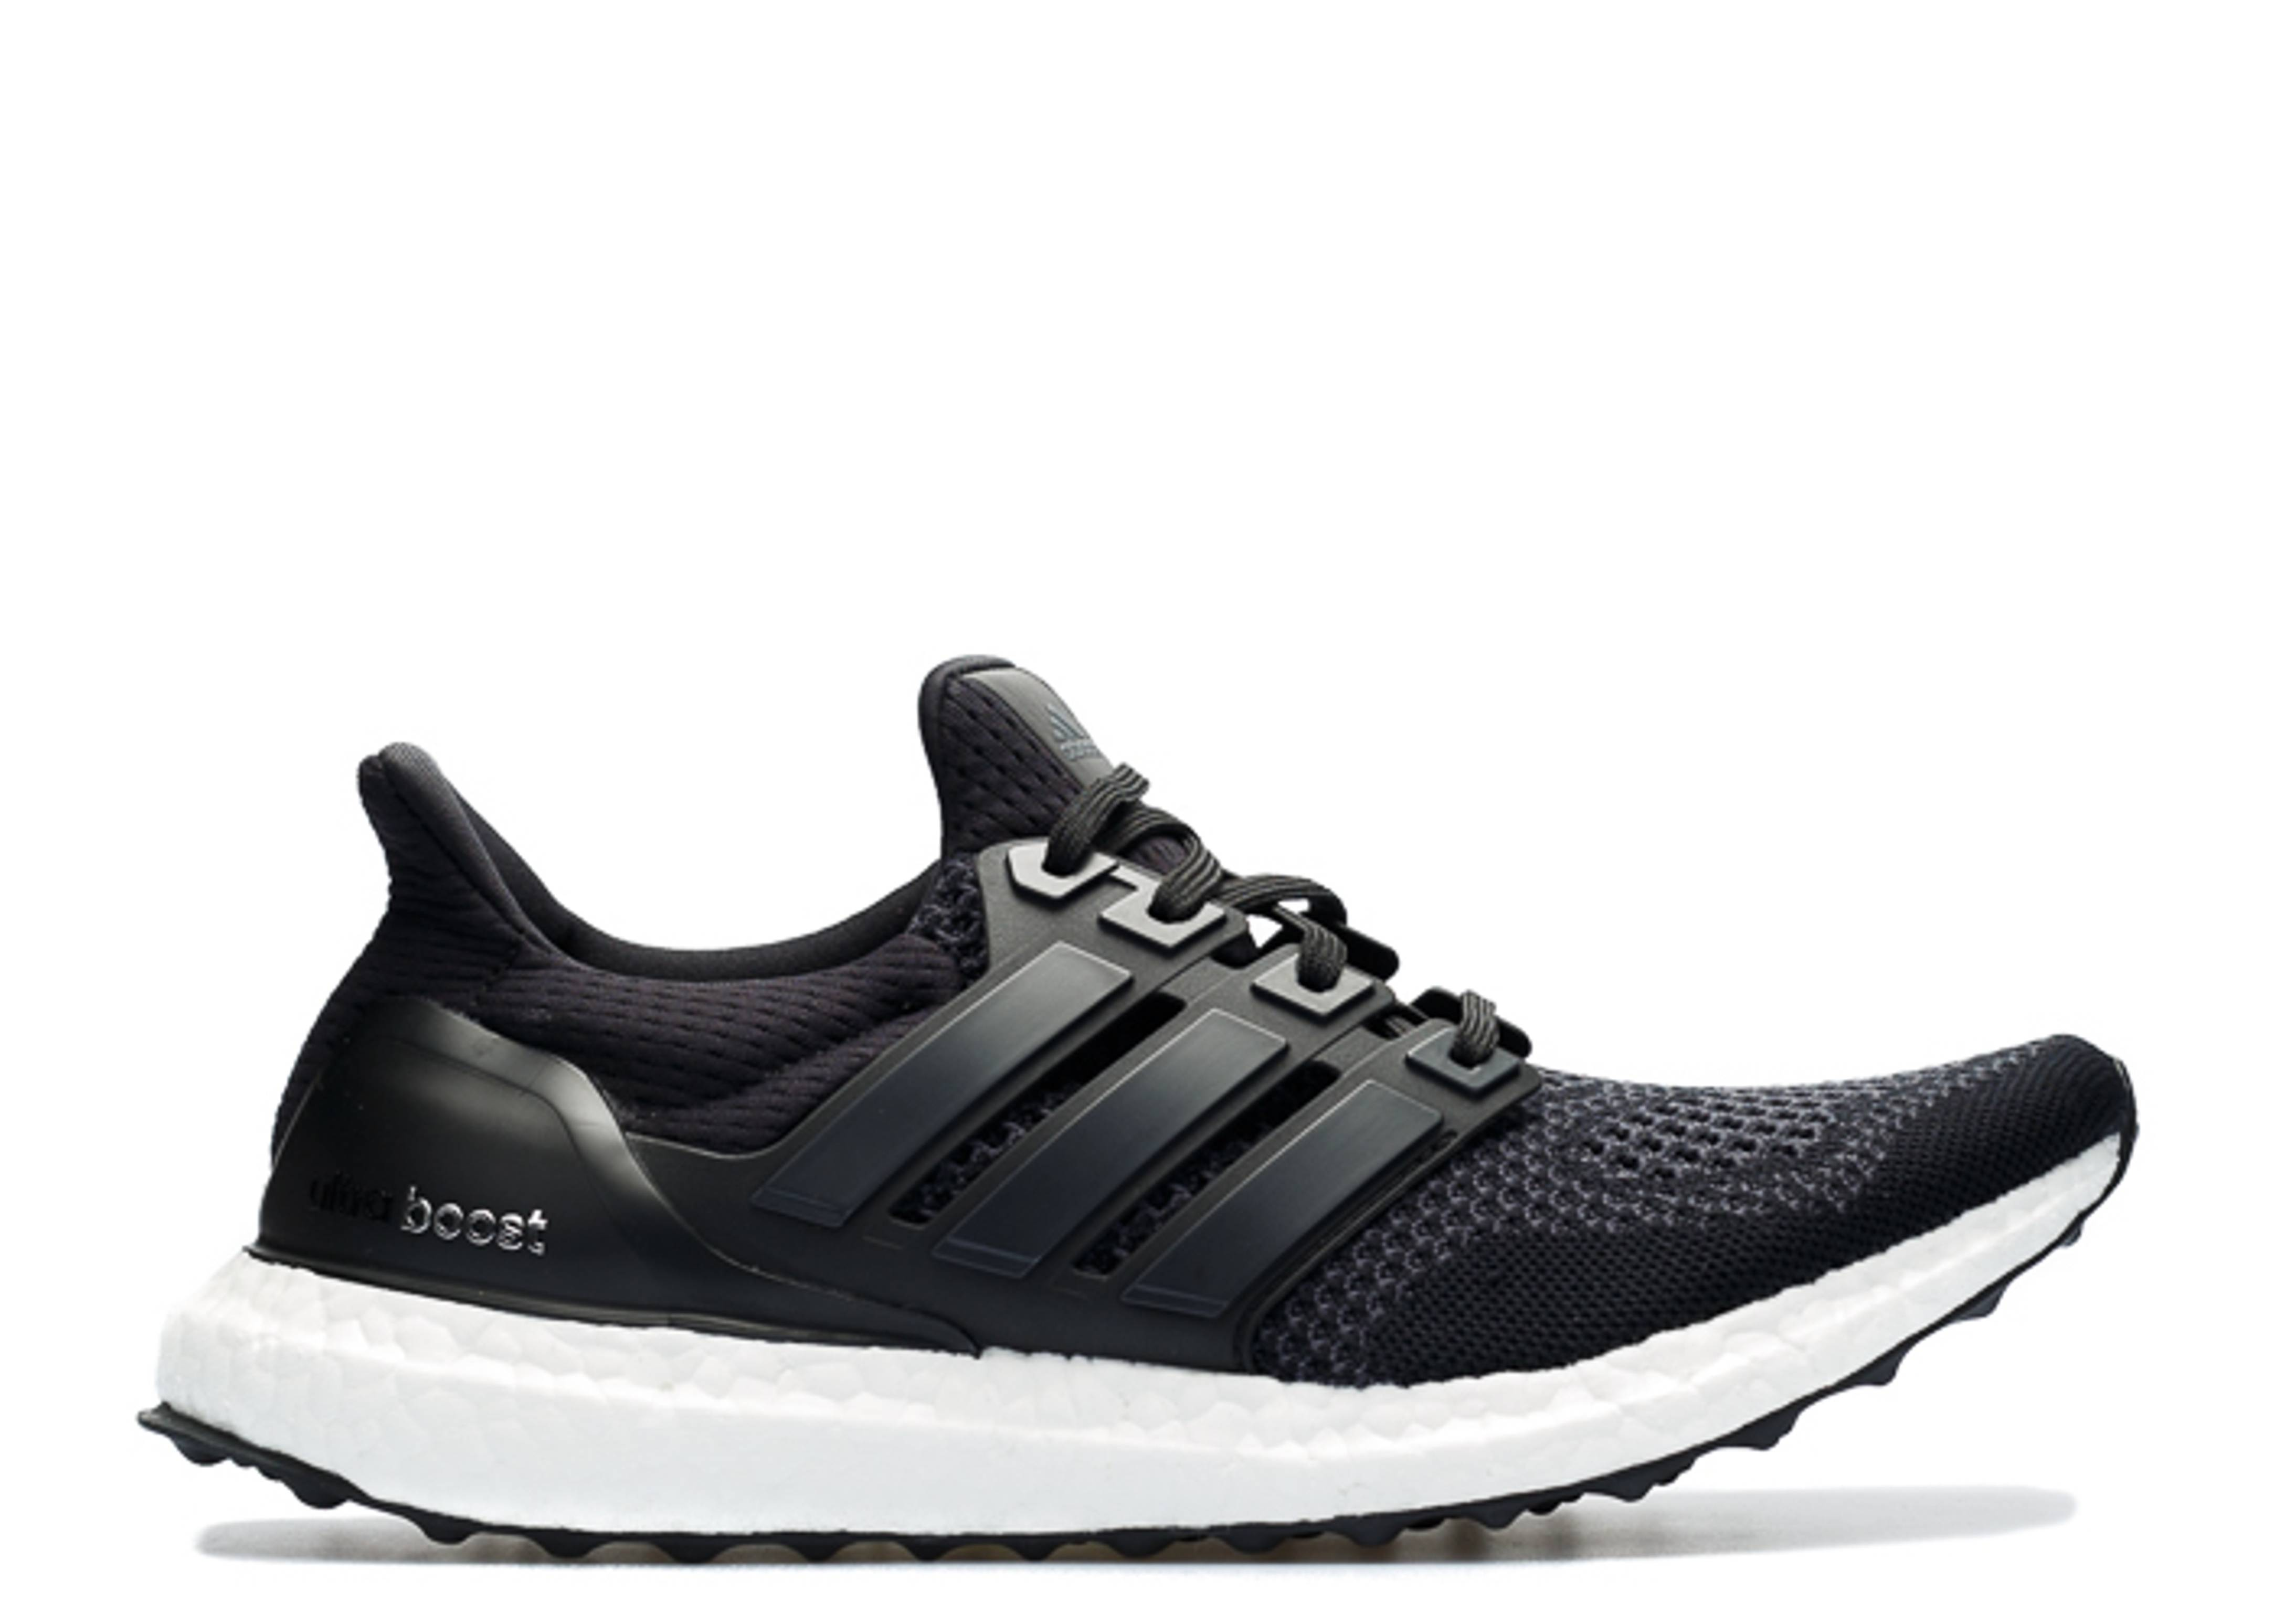 Adidas Ultra Boost Images